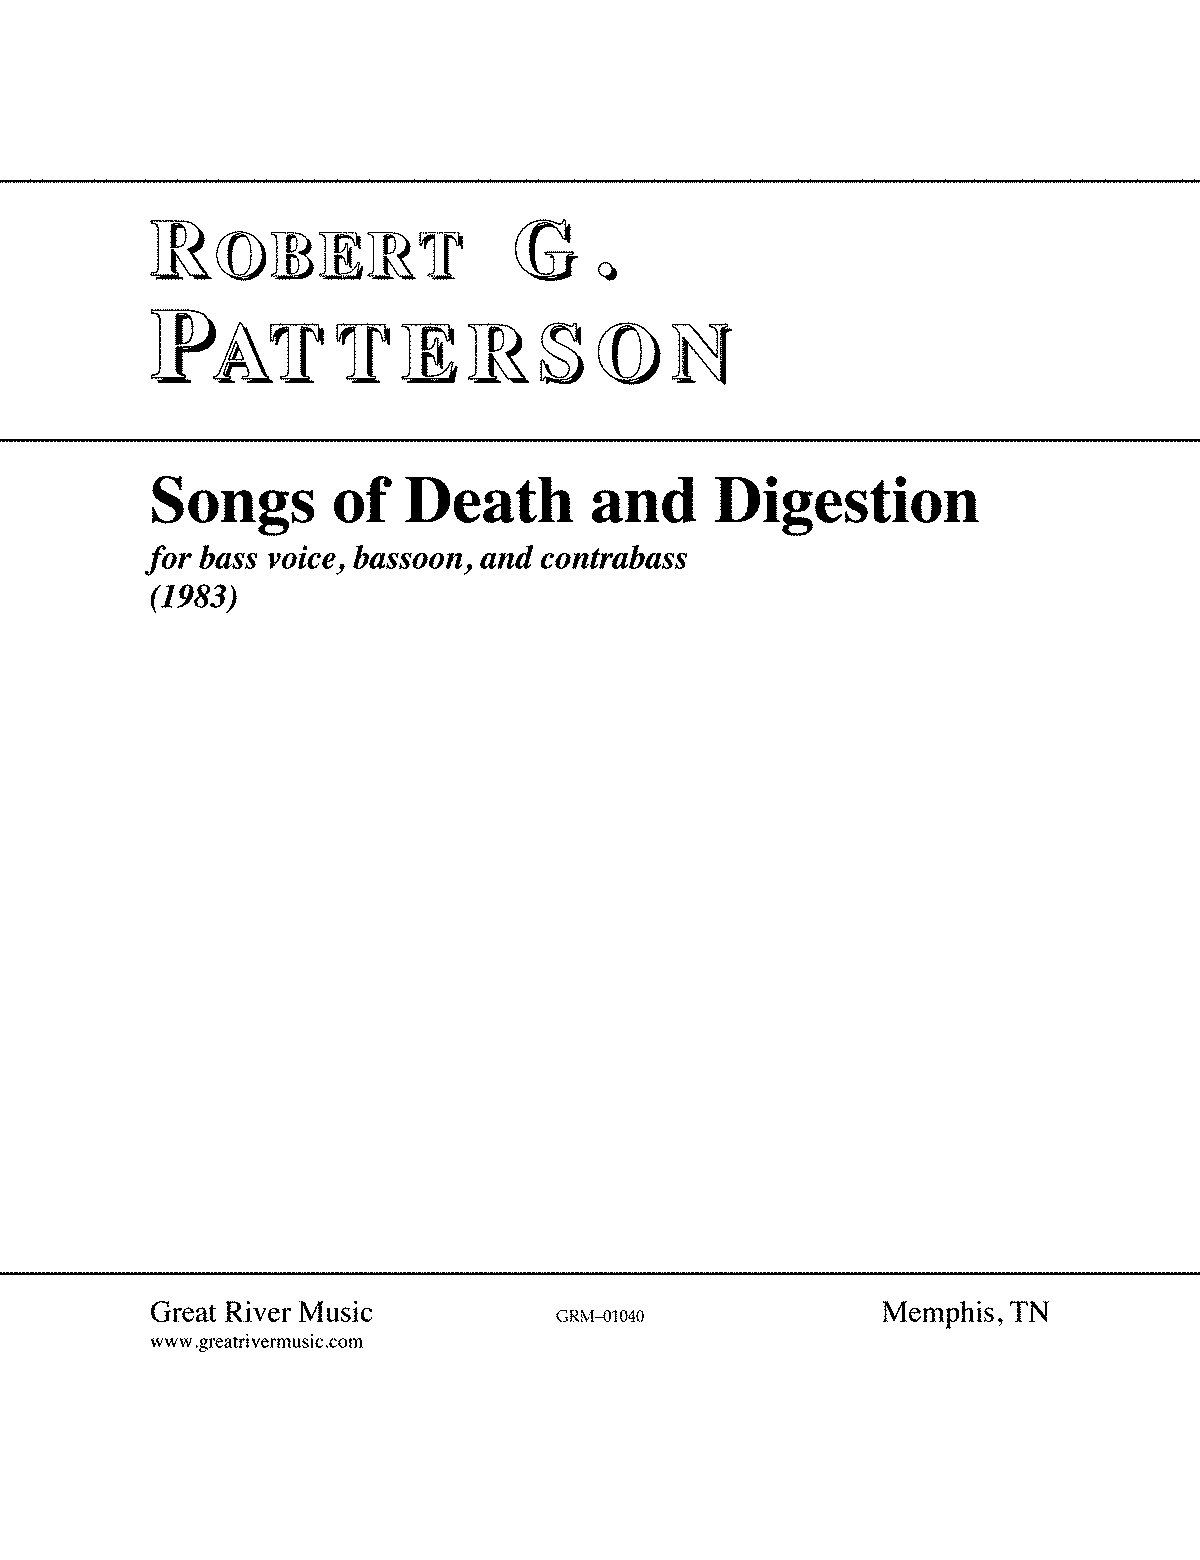 PMLP399296-Patterson-SongsOfDeathAndDigestion.pdf